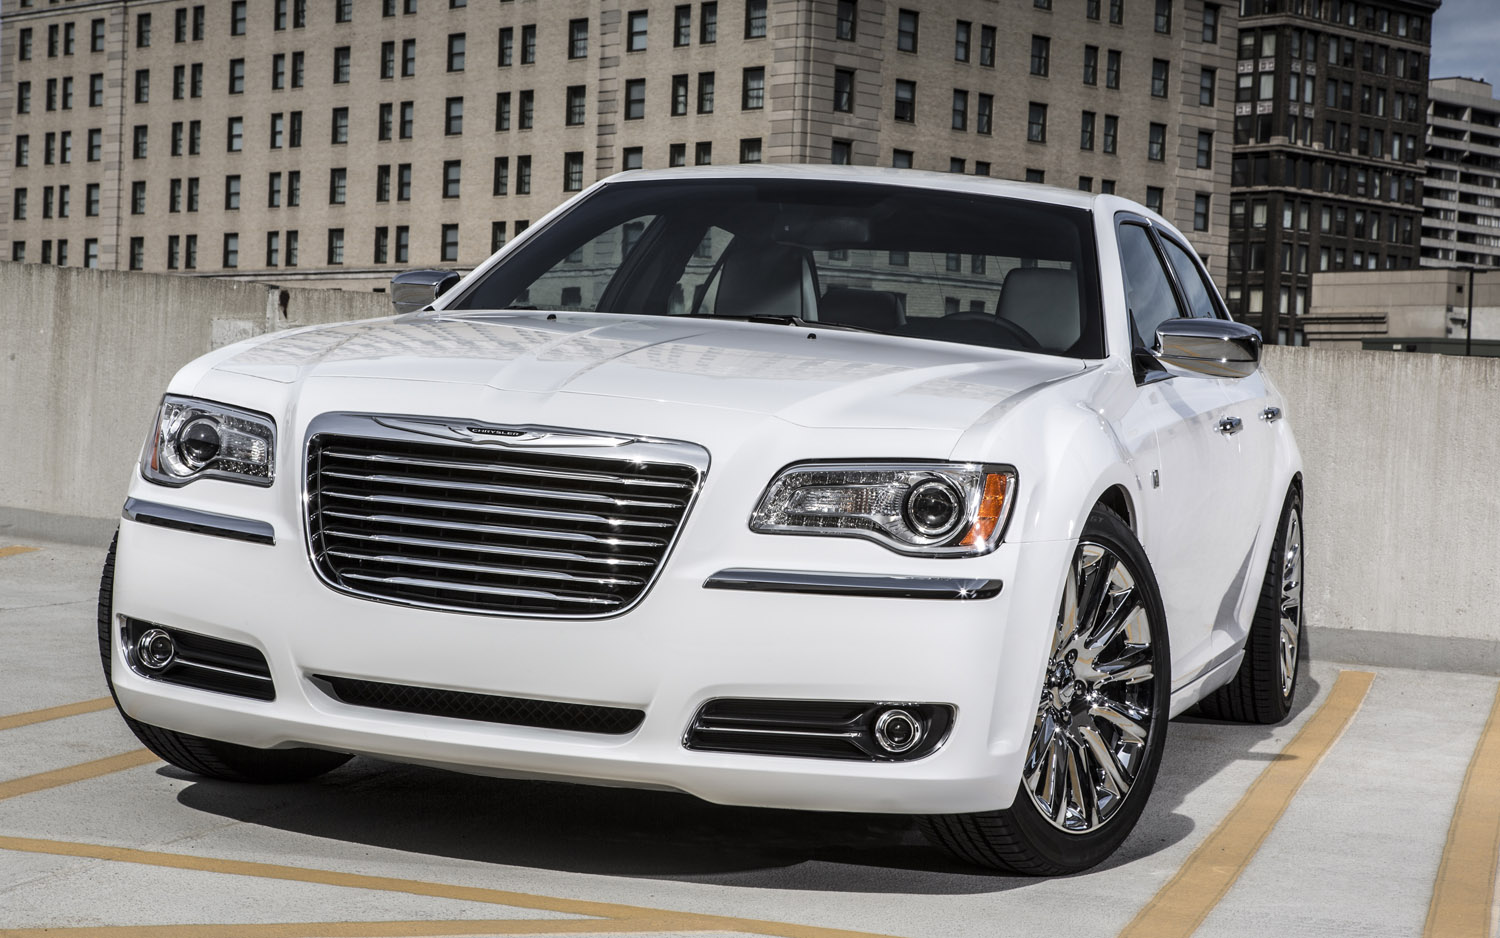 hight resolution of 2013 chrysler 300 motown special edition celebrates detroit music